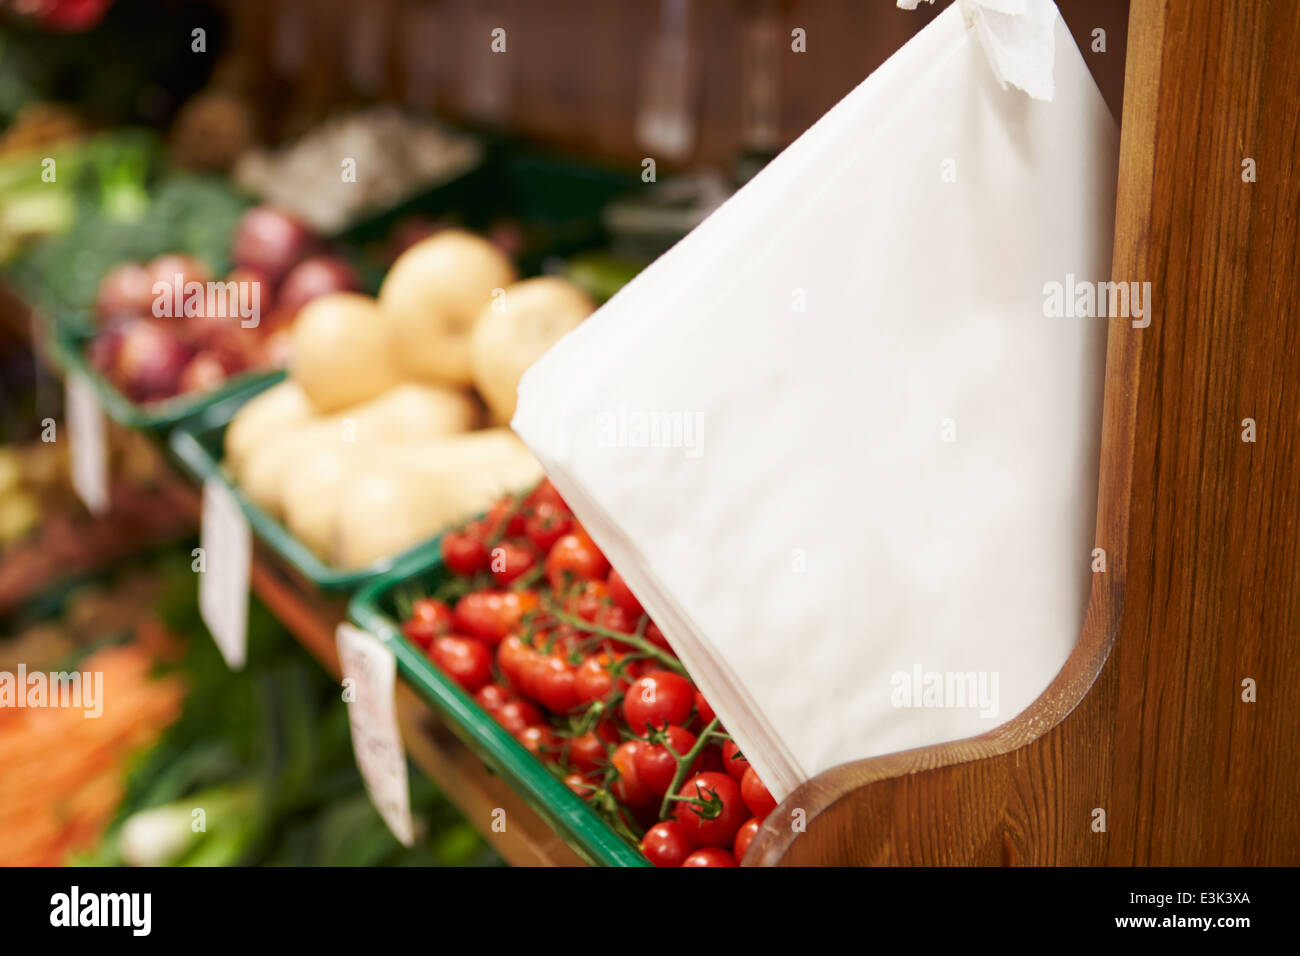 Paper Bags By Fruit Counter Of Farm Shop - Stock Image